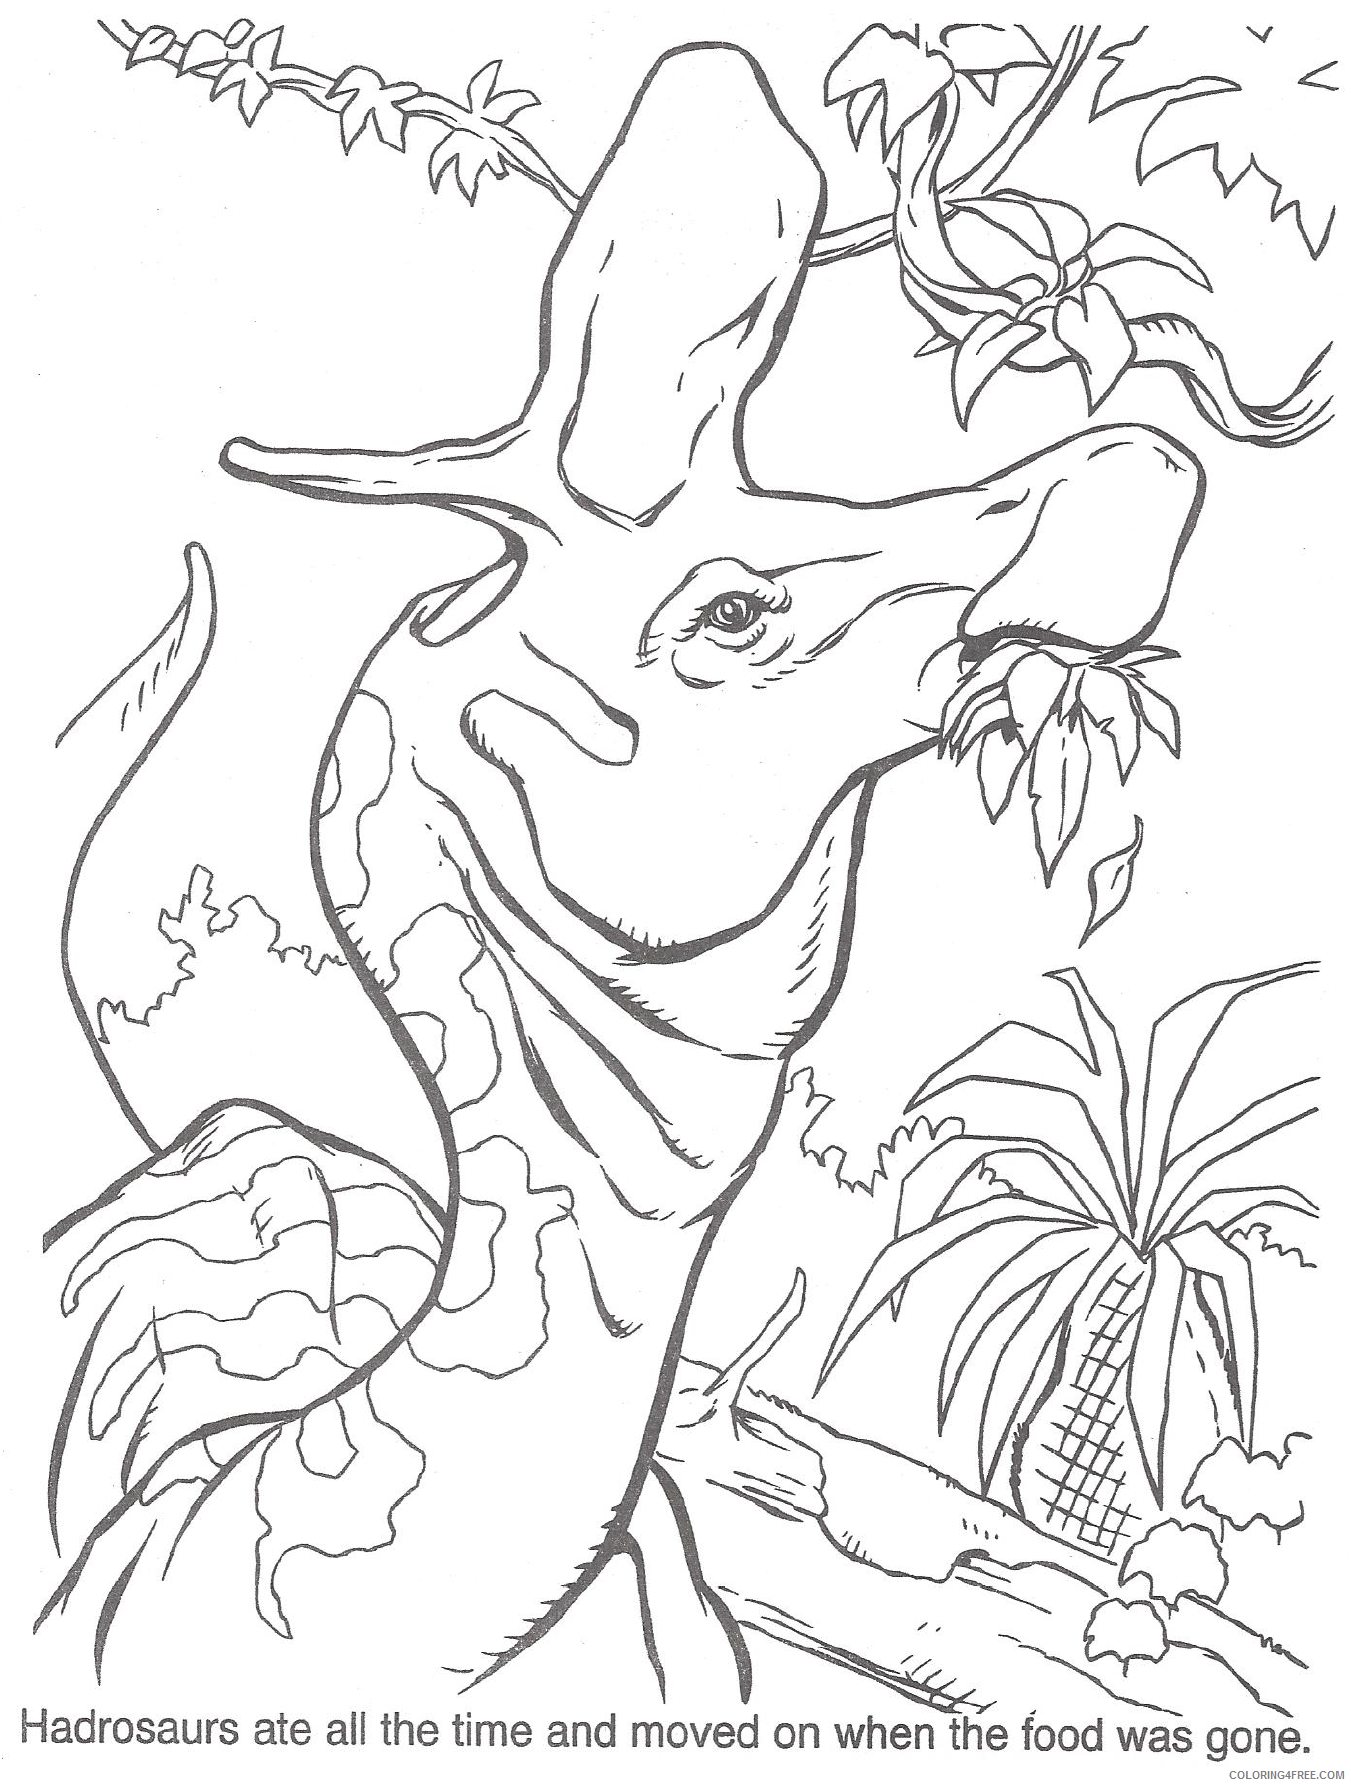 jurassic park coloring pages baby dinosaur Coloring4free ... | 1786x1351